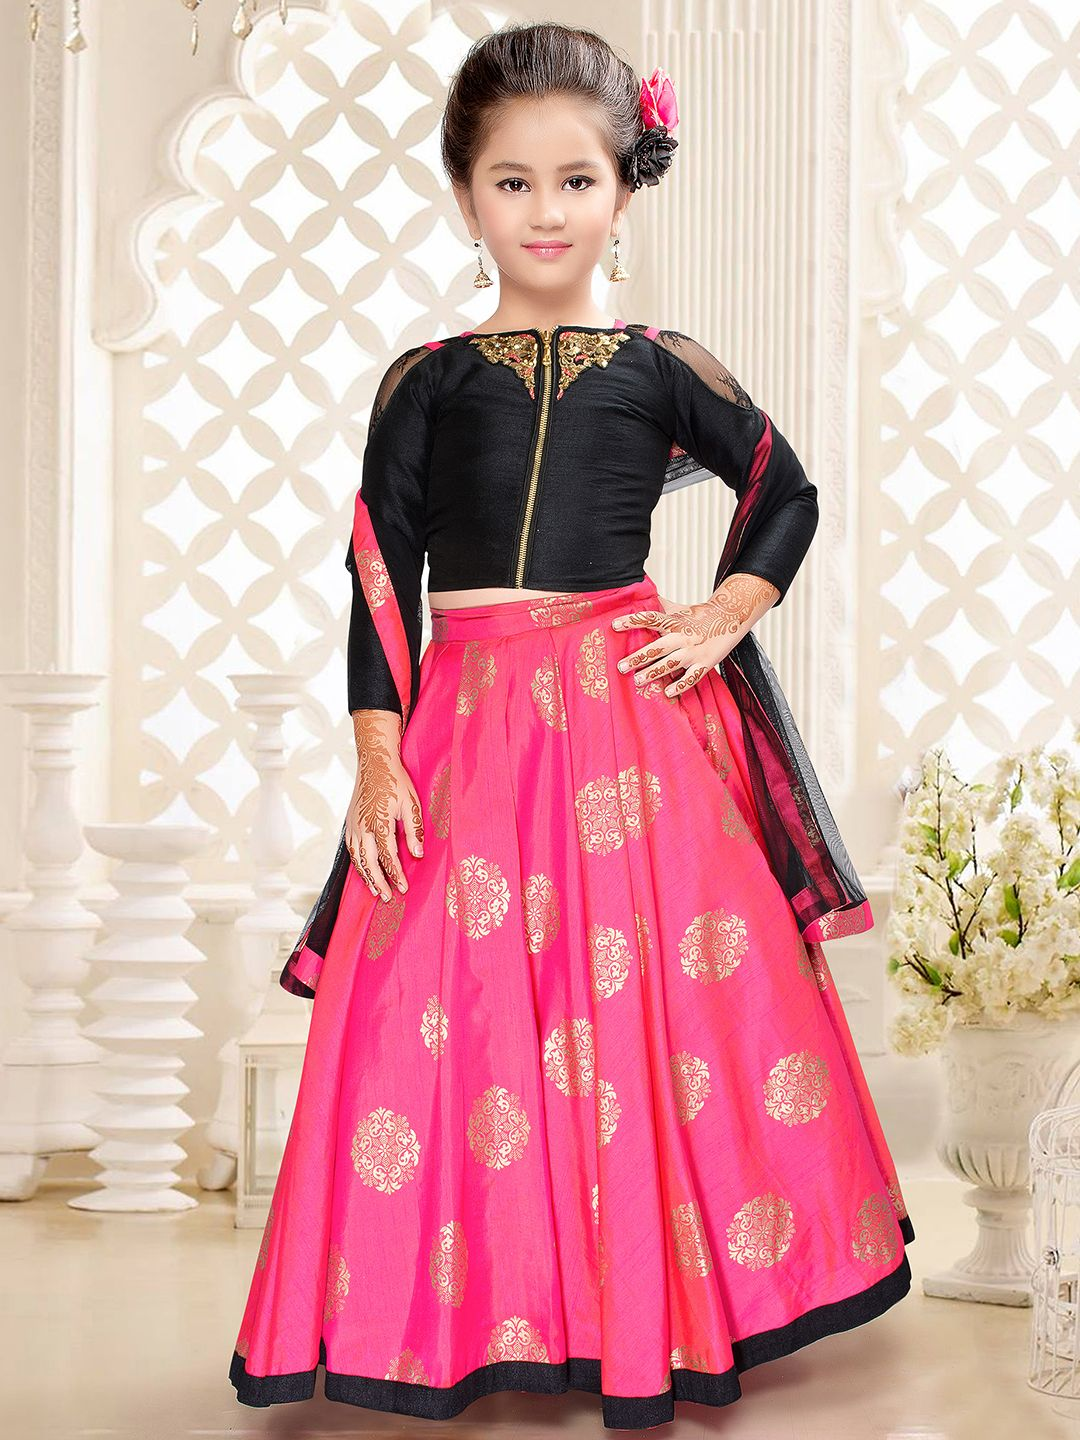 0e9d5f9ba Top Indian wedding style for your little Princess